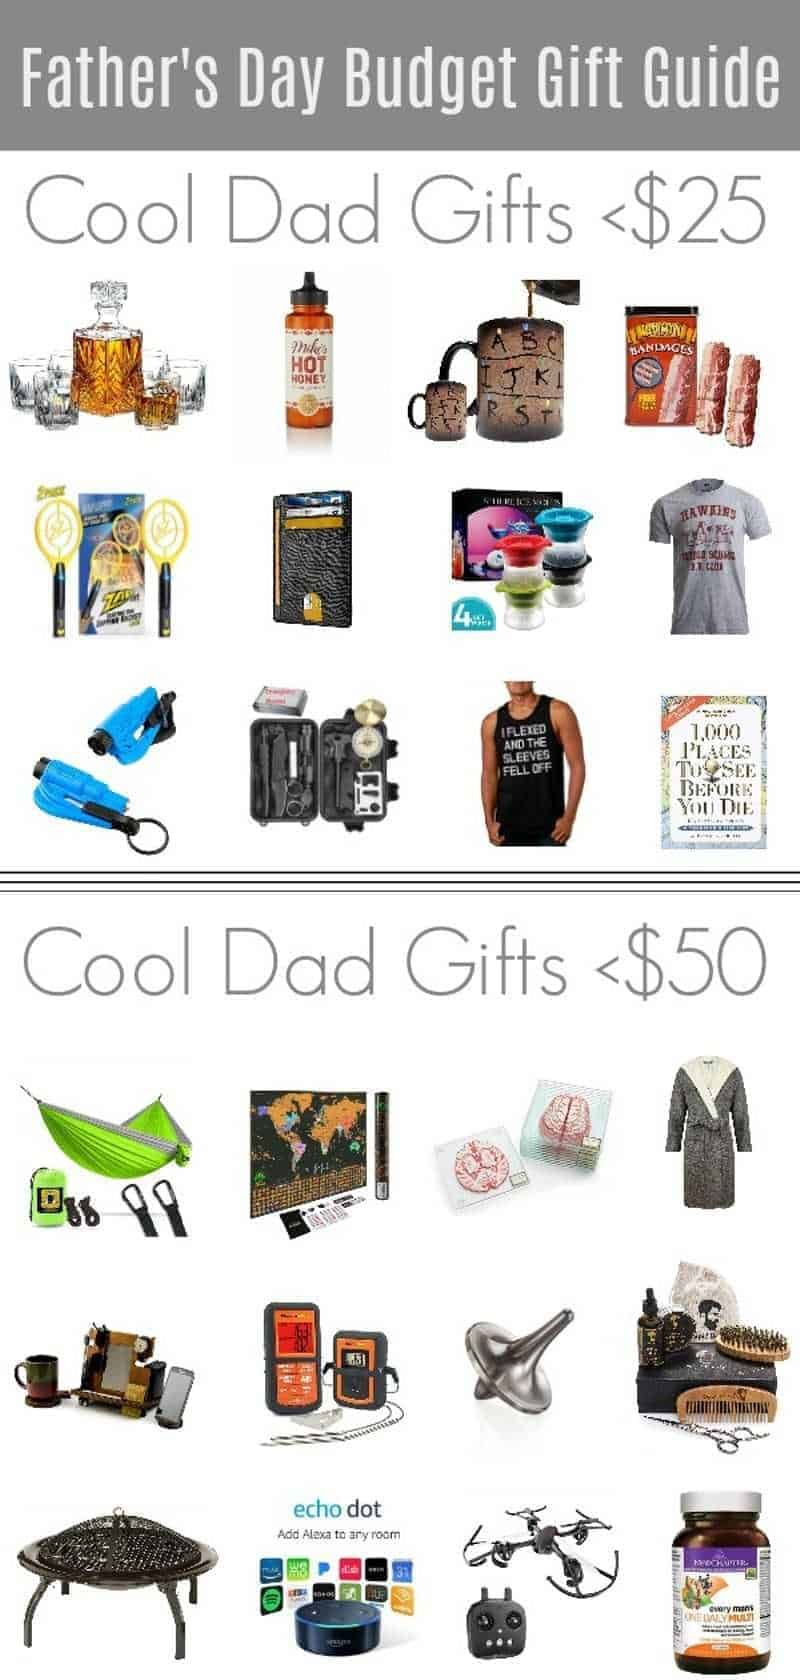 Dad Christmas Gifts 2020 24 Cheap and Unique Father's Day Gifts of 2020 (Sorry, Cool Dads